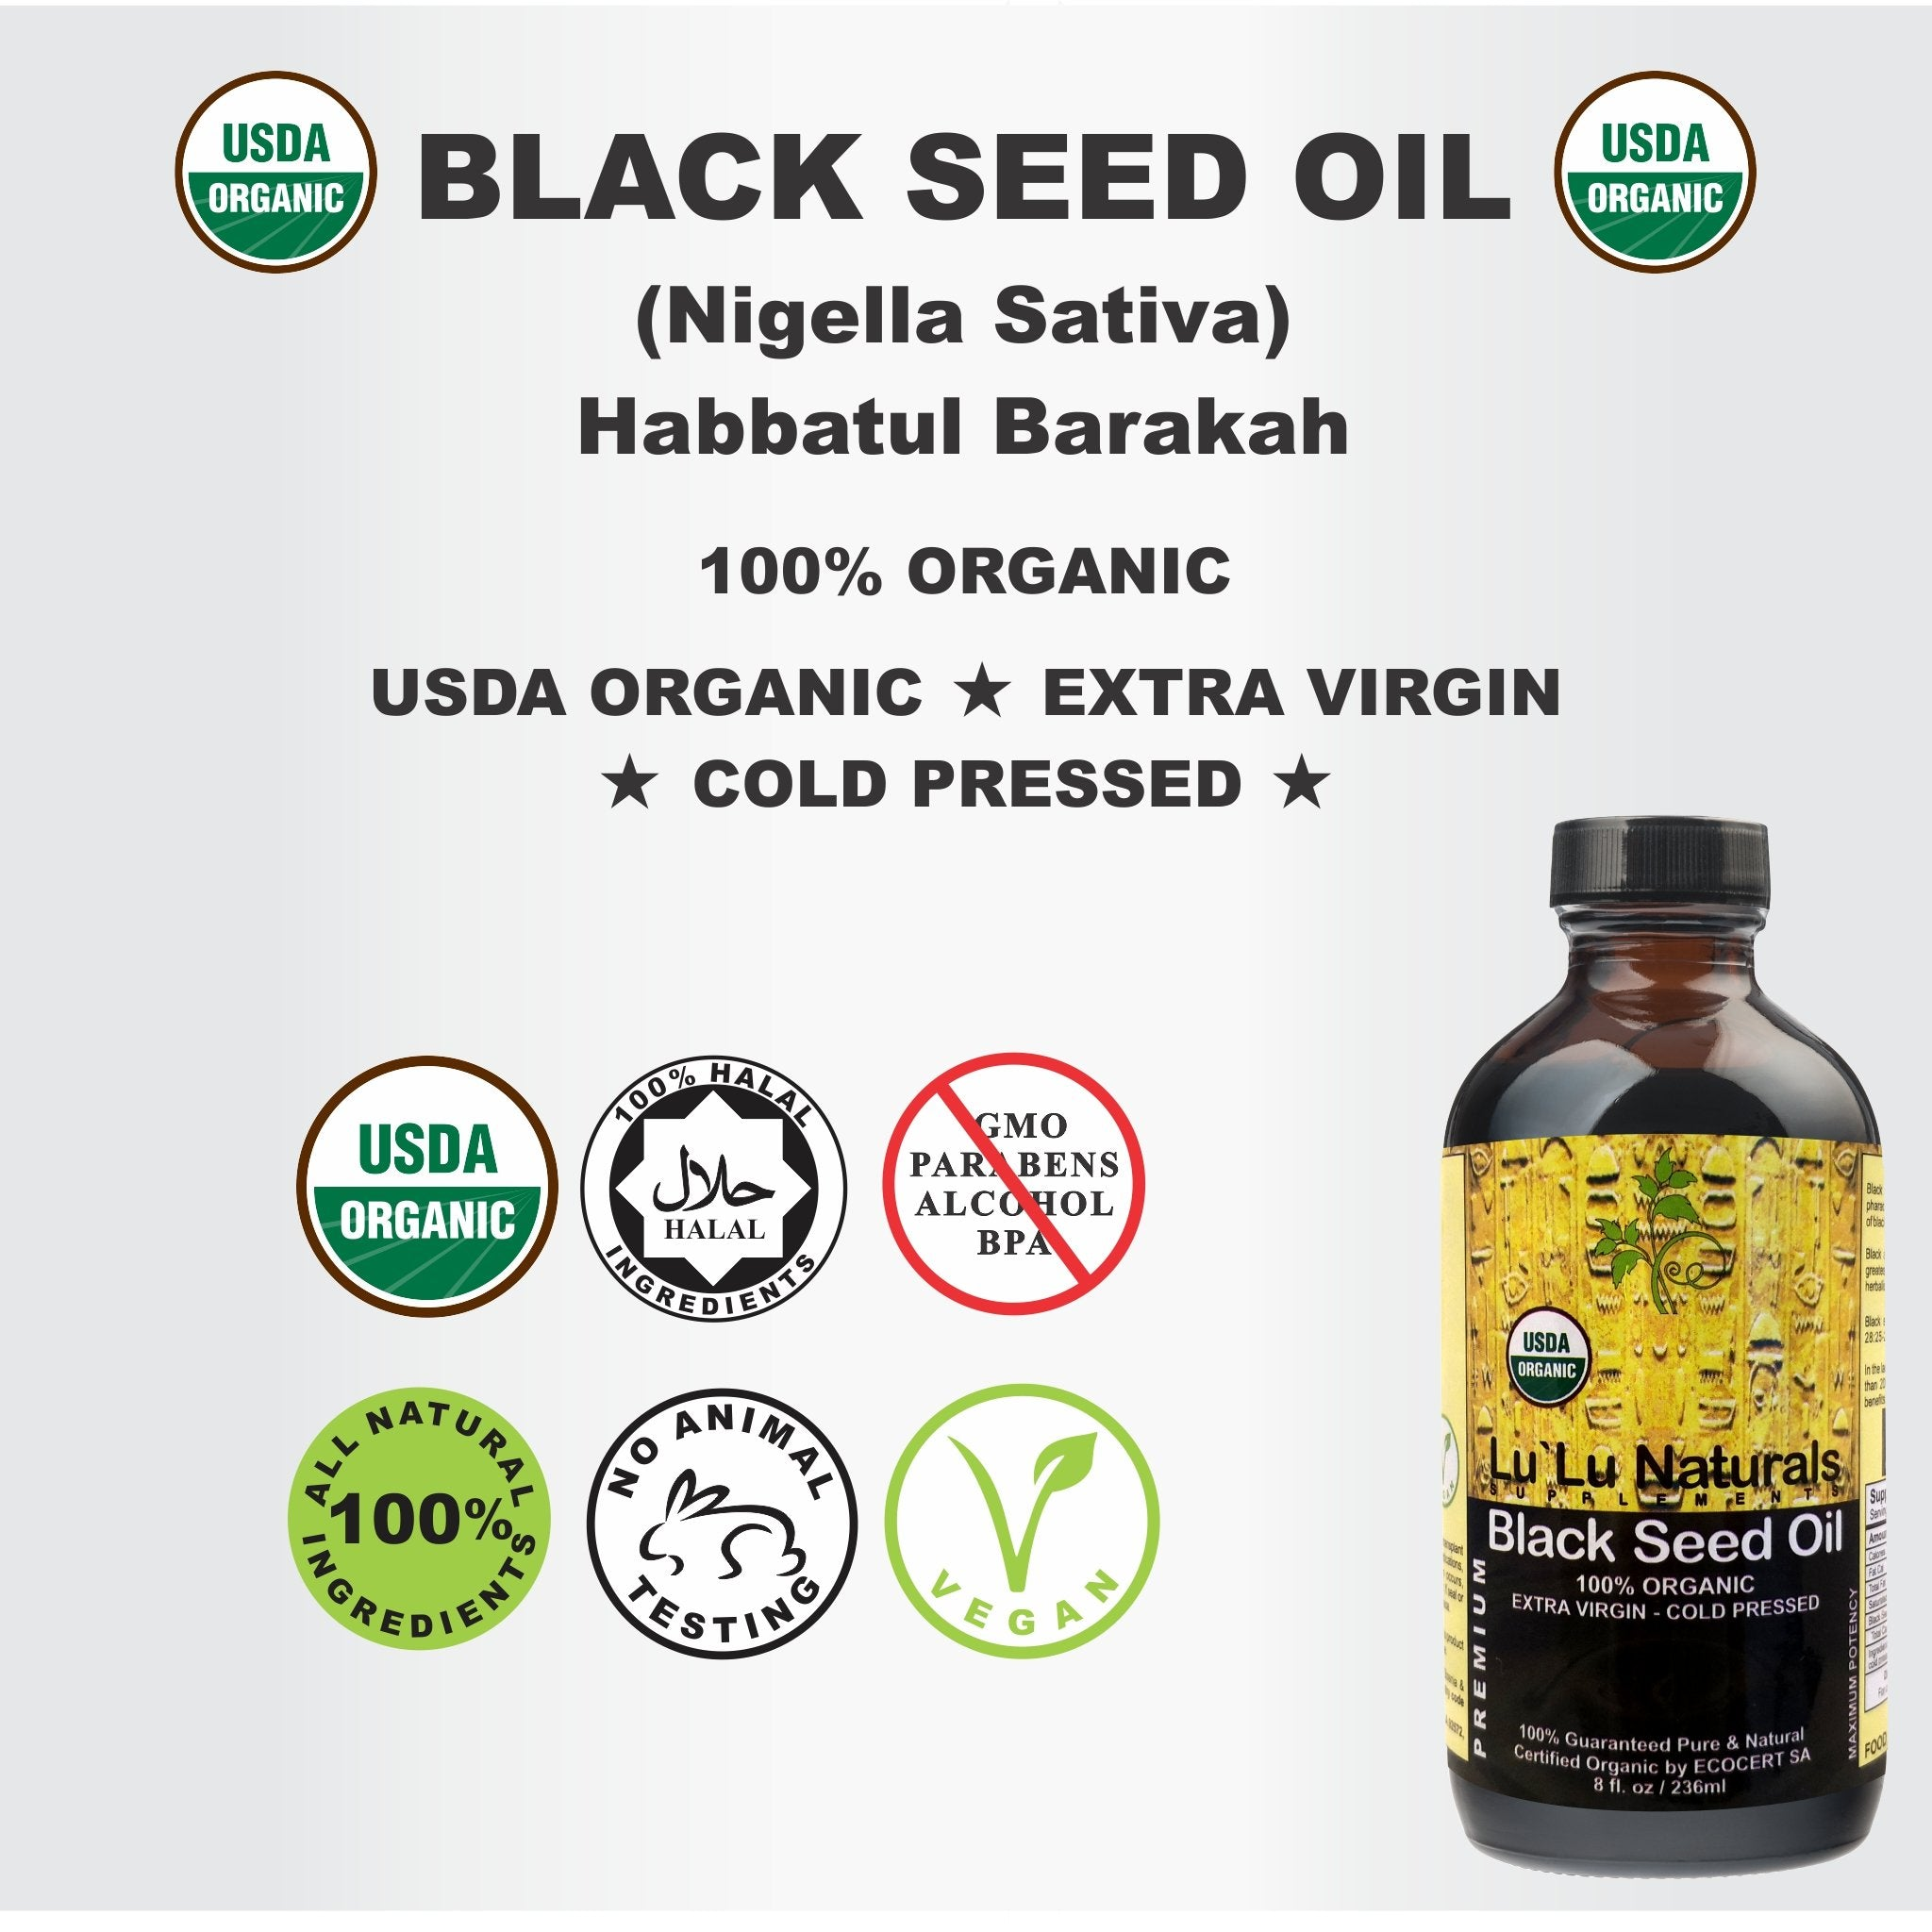 What Makes USDA Certified Organic Black Seed Oil Natural Wonder